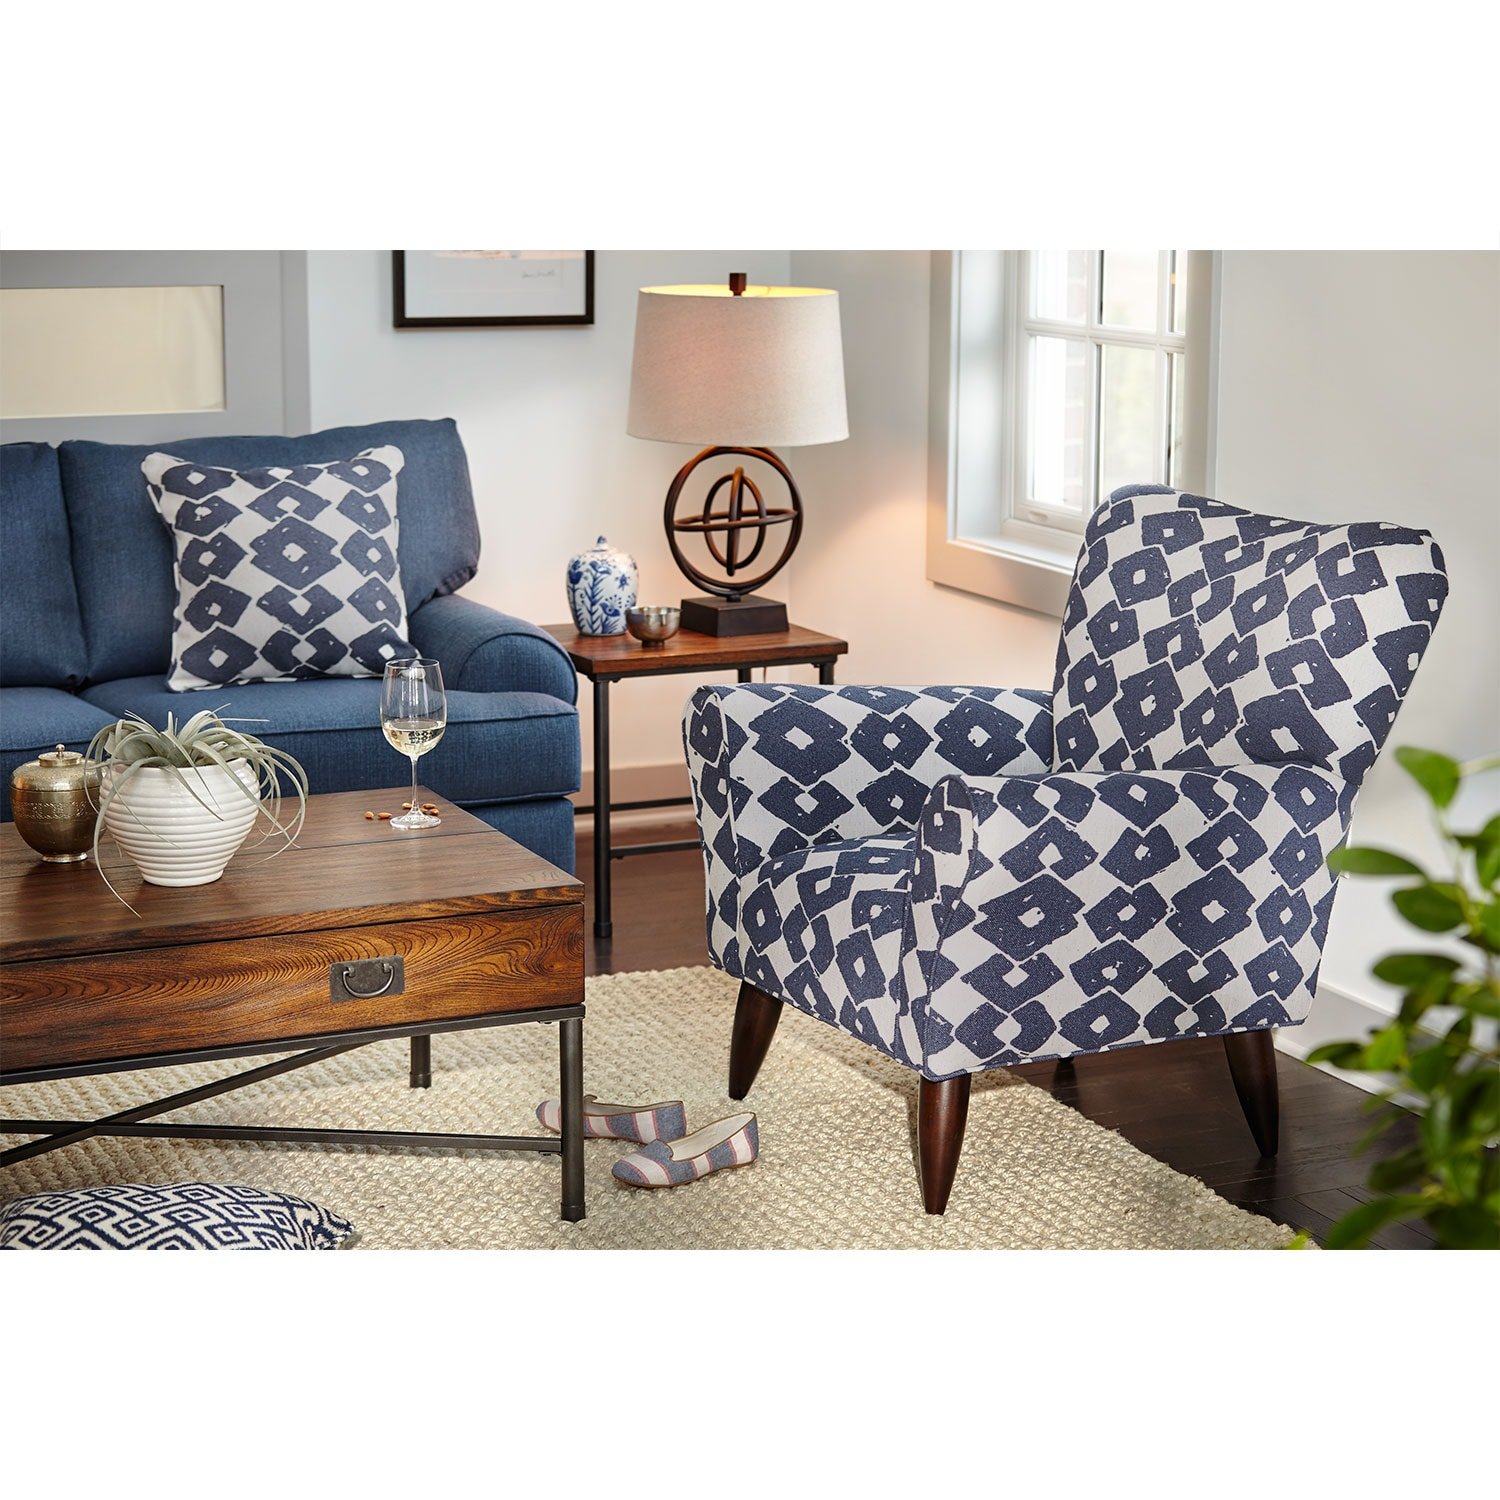 Accent Furniture For Living Room: Jessie Accent Chair - Blue